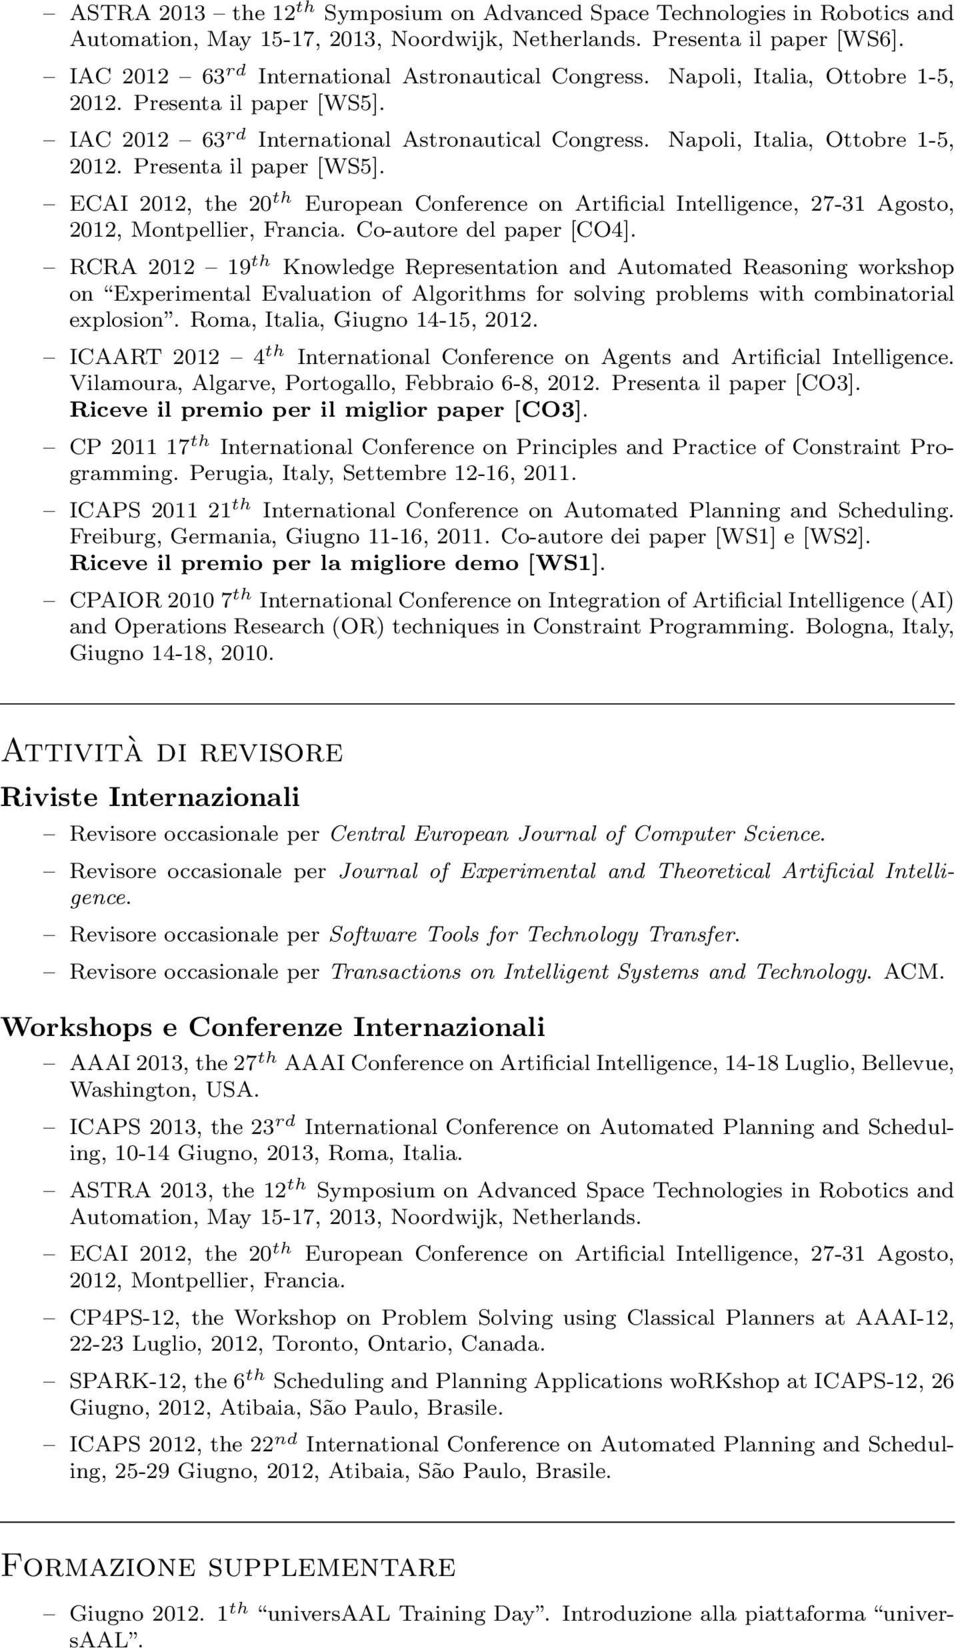 ECAI 2012, the 20 th European Conference on Artificial Intelligence, 27-31 Agosto, 2012, Montpellier, Francia. Co-autore del paper [CO4].